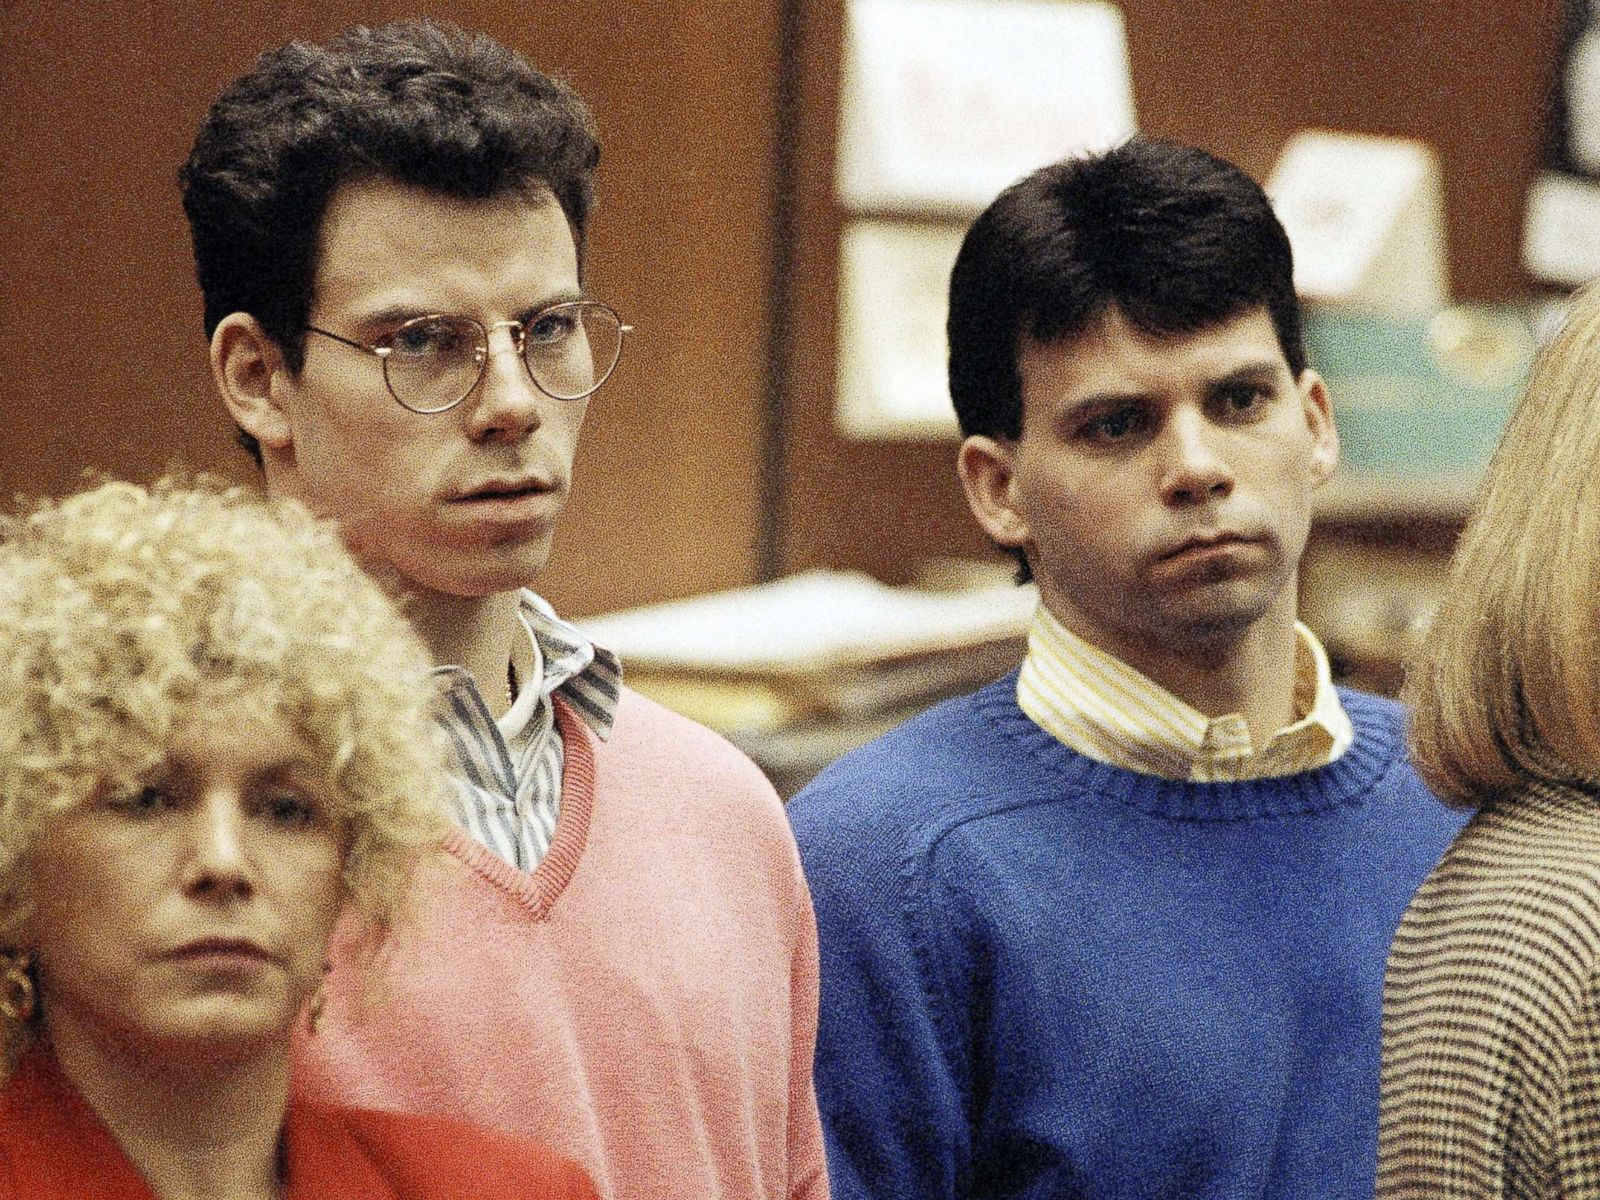 Menendez brothers burst into tears during emotional prison reunion